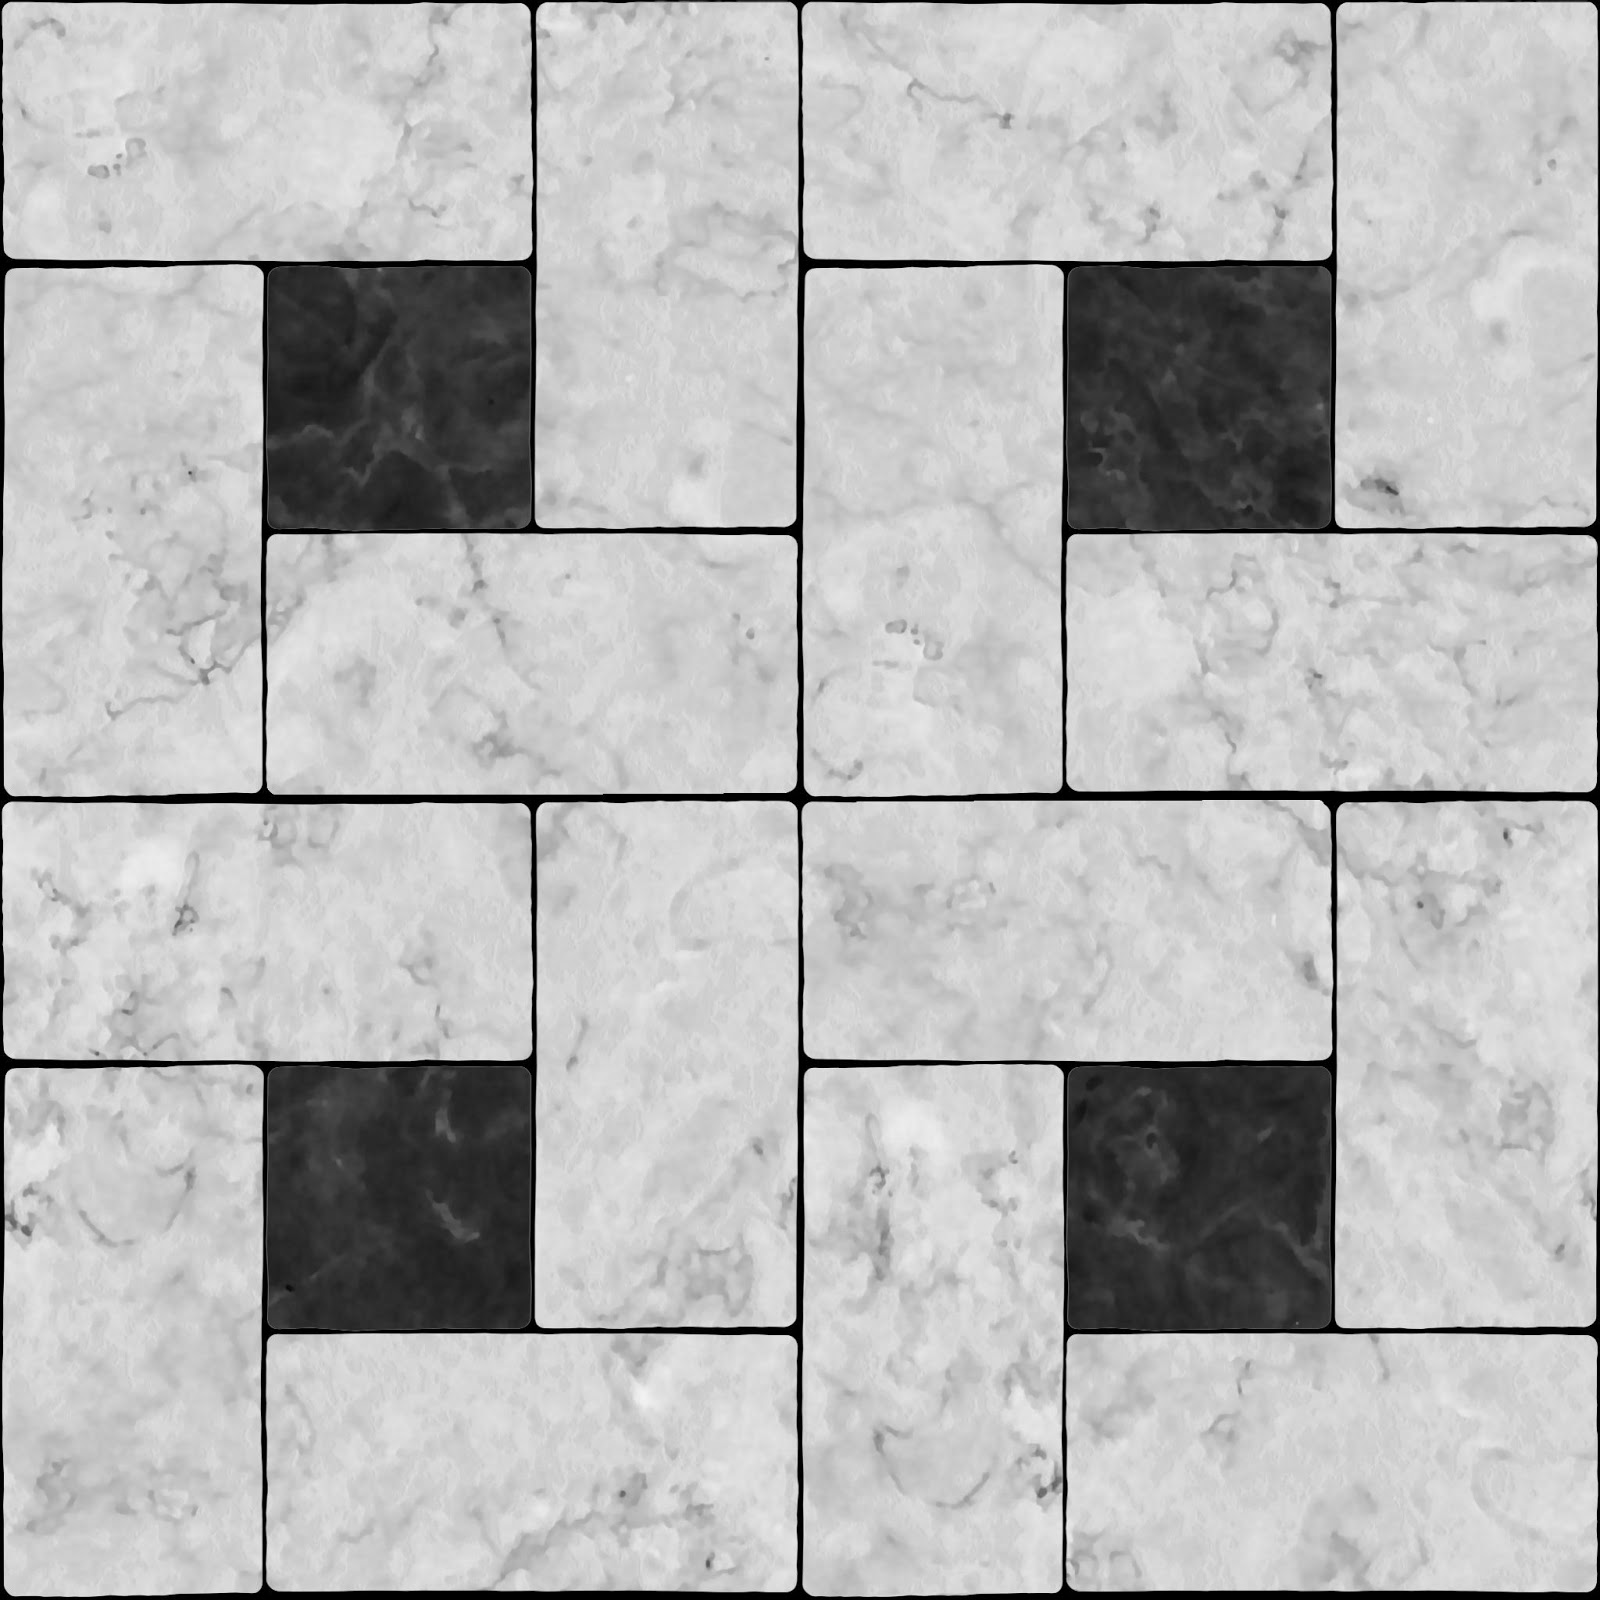 Black And White Marble Floors Is Marble Tile Good For Bathroom Floor Marble Floor Tile Marble